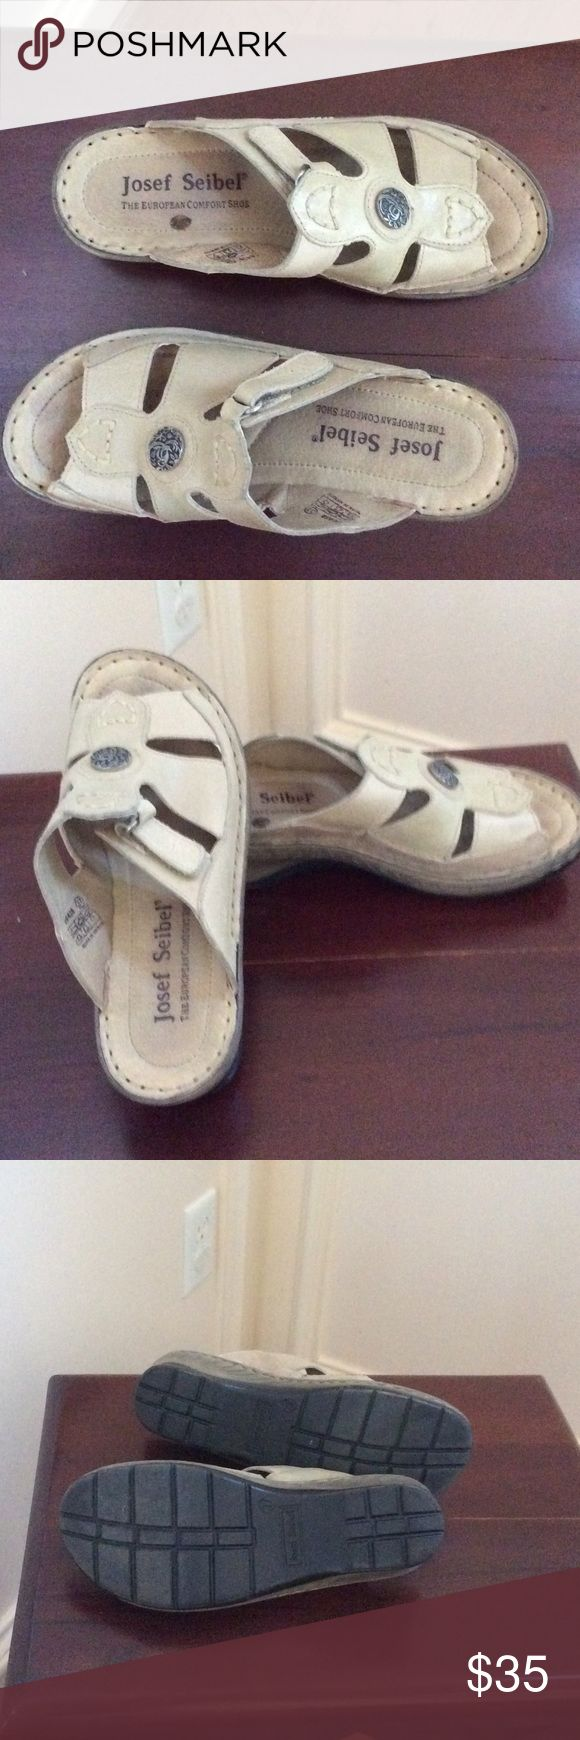 Josef Seibel Sandels The European Comfort Shoe!! Tan with silver embossed button adornment. Decorative stitching and adjustable side closures for a perfect fit.  2 inch heel. Buttery leather.  Lovingly worn few times.  Non smoking home. Josef Seibel Shoes Sandals